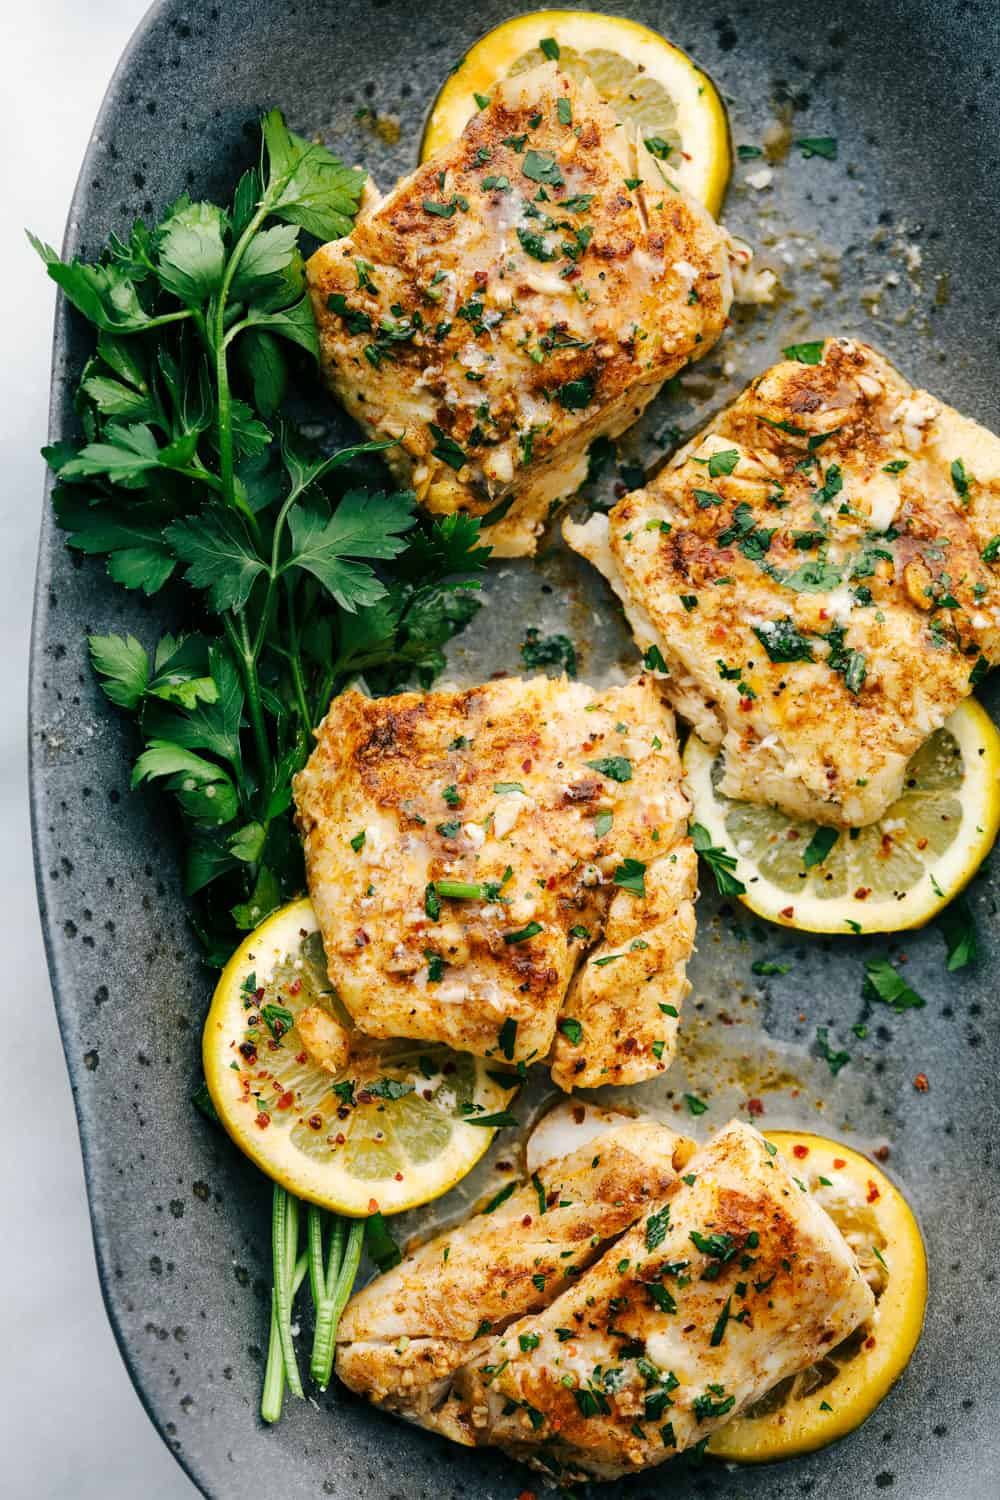 Baked cajun garlic butter cod served on a black speckled plate with green garnish and lemon slices underneath the cod filets.